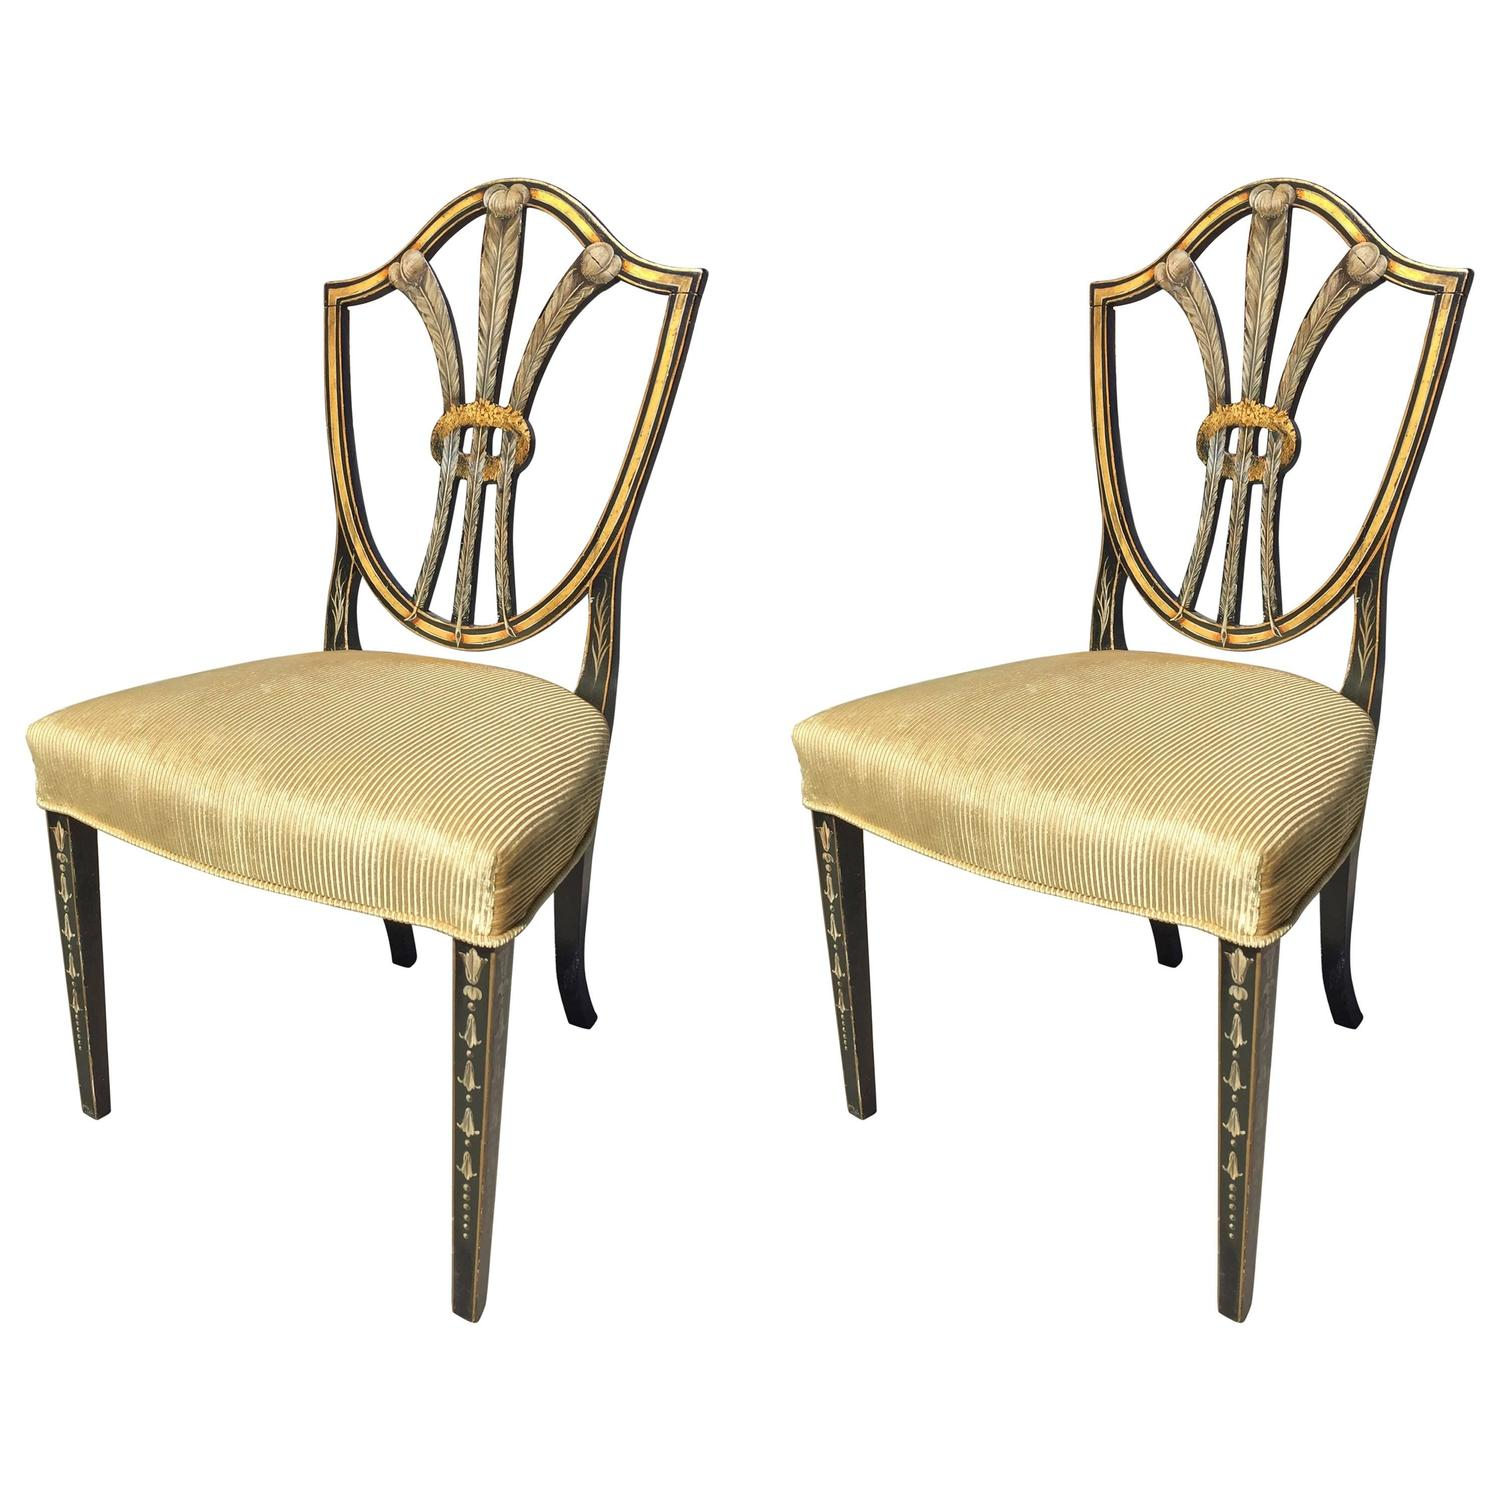 Pair Of Hepplewhite Shield Back Chairs With Windsor Feather Painted Backs